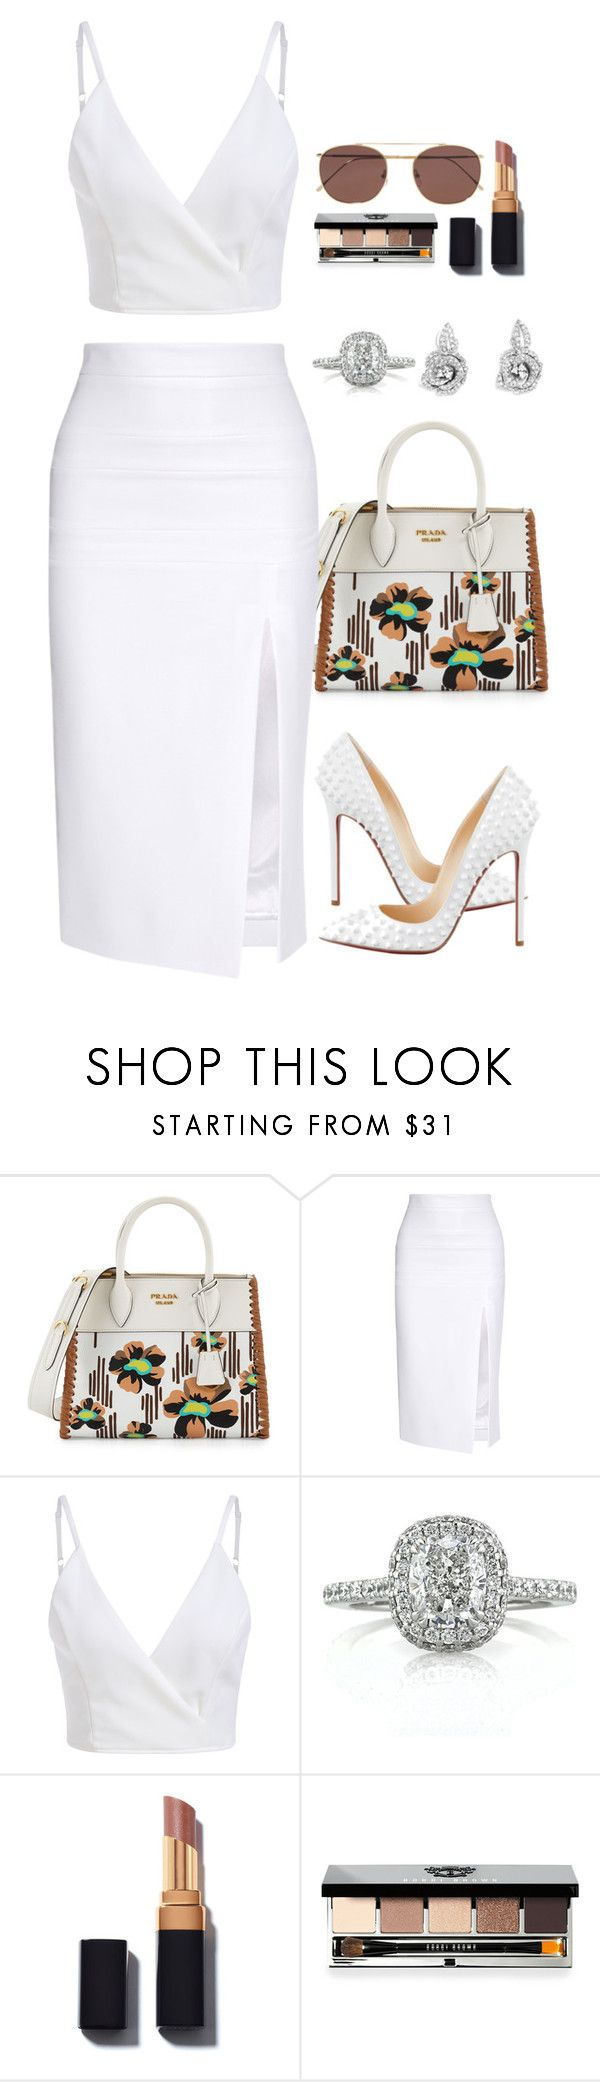 """""""Untitled #1255"""" by fashionmodelstyle ❤ liked on Polyvore featuring Prada, Cushnie Et Ochs, Christian Louboutin, Mark Broumand, Bobbi Brown Cosmetics and Illesteva"""